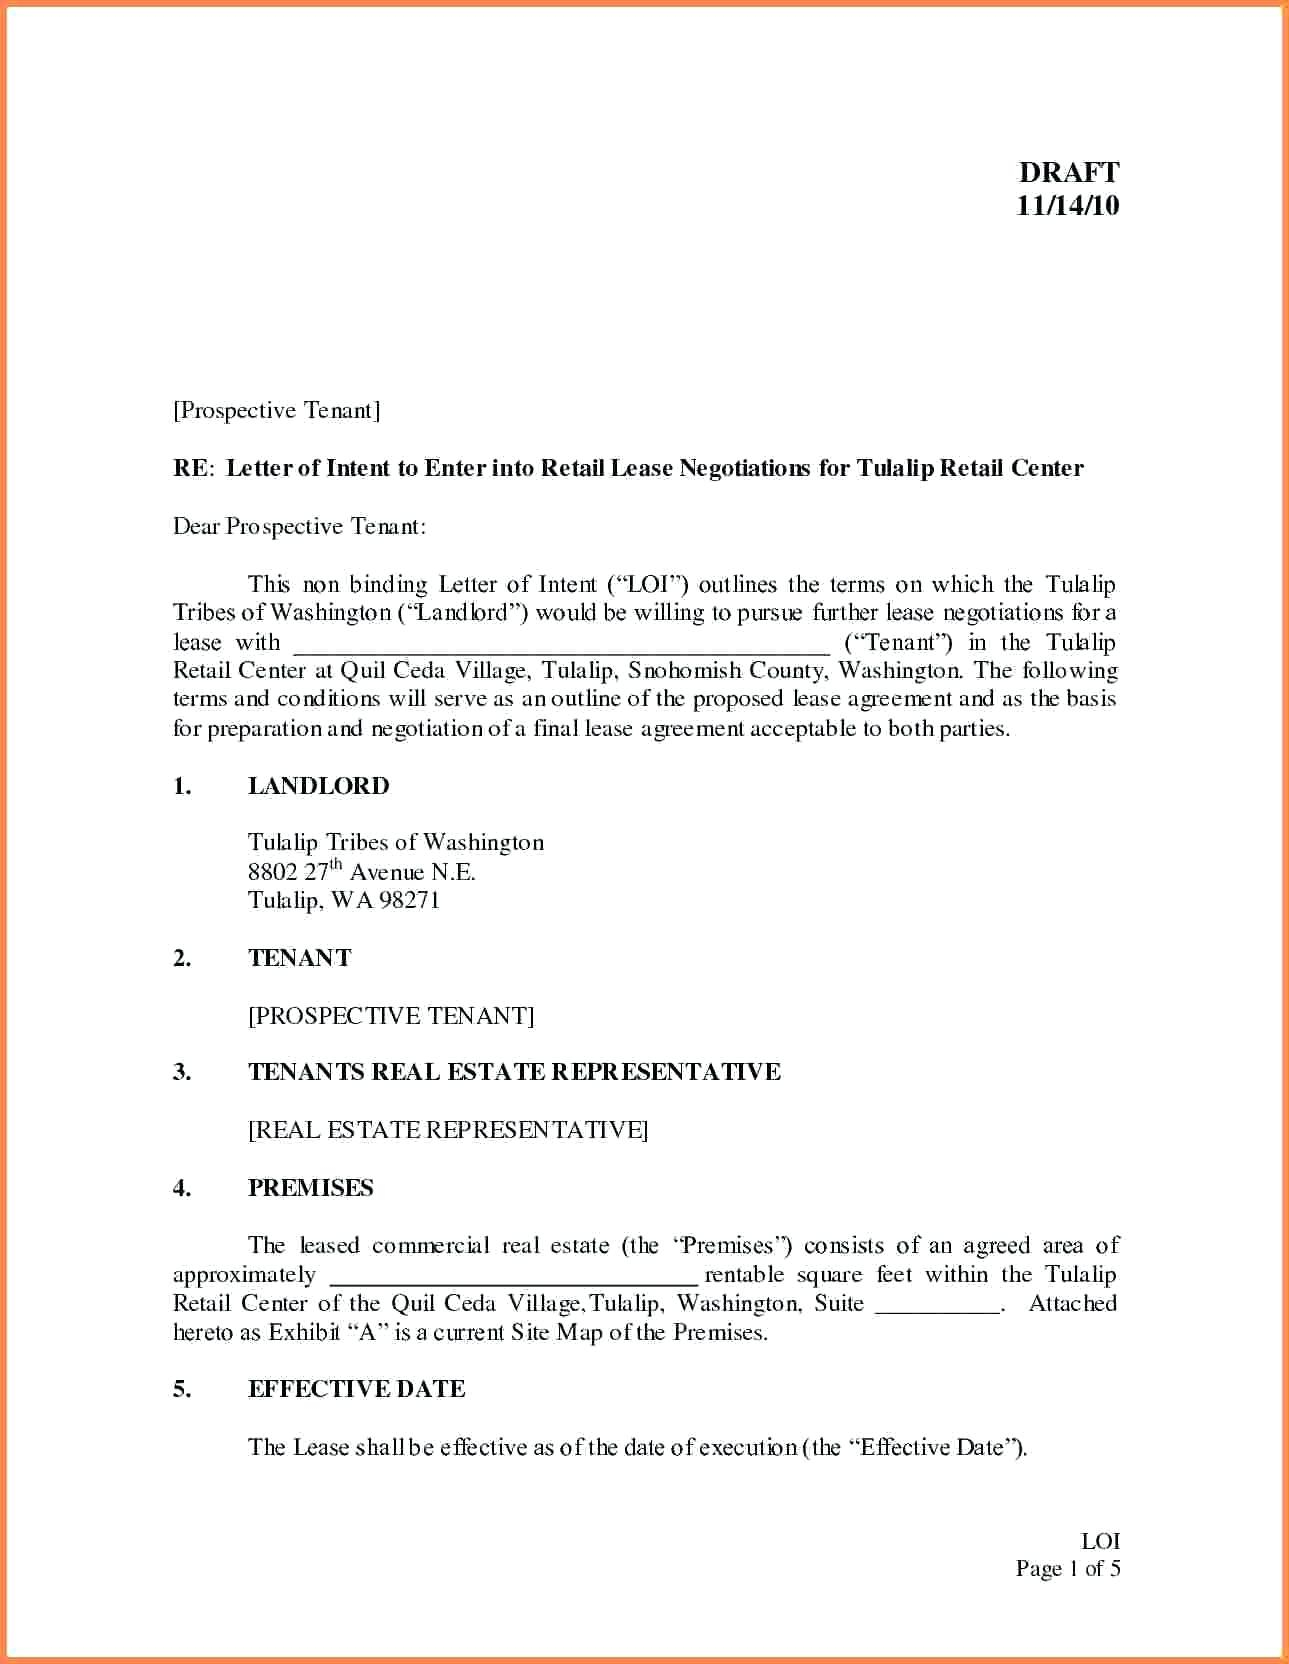 Letter Of Intent to Lease Commercial Property Template - Templatemercial Real Estate Letter Intent to Lease Sample